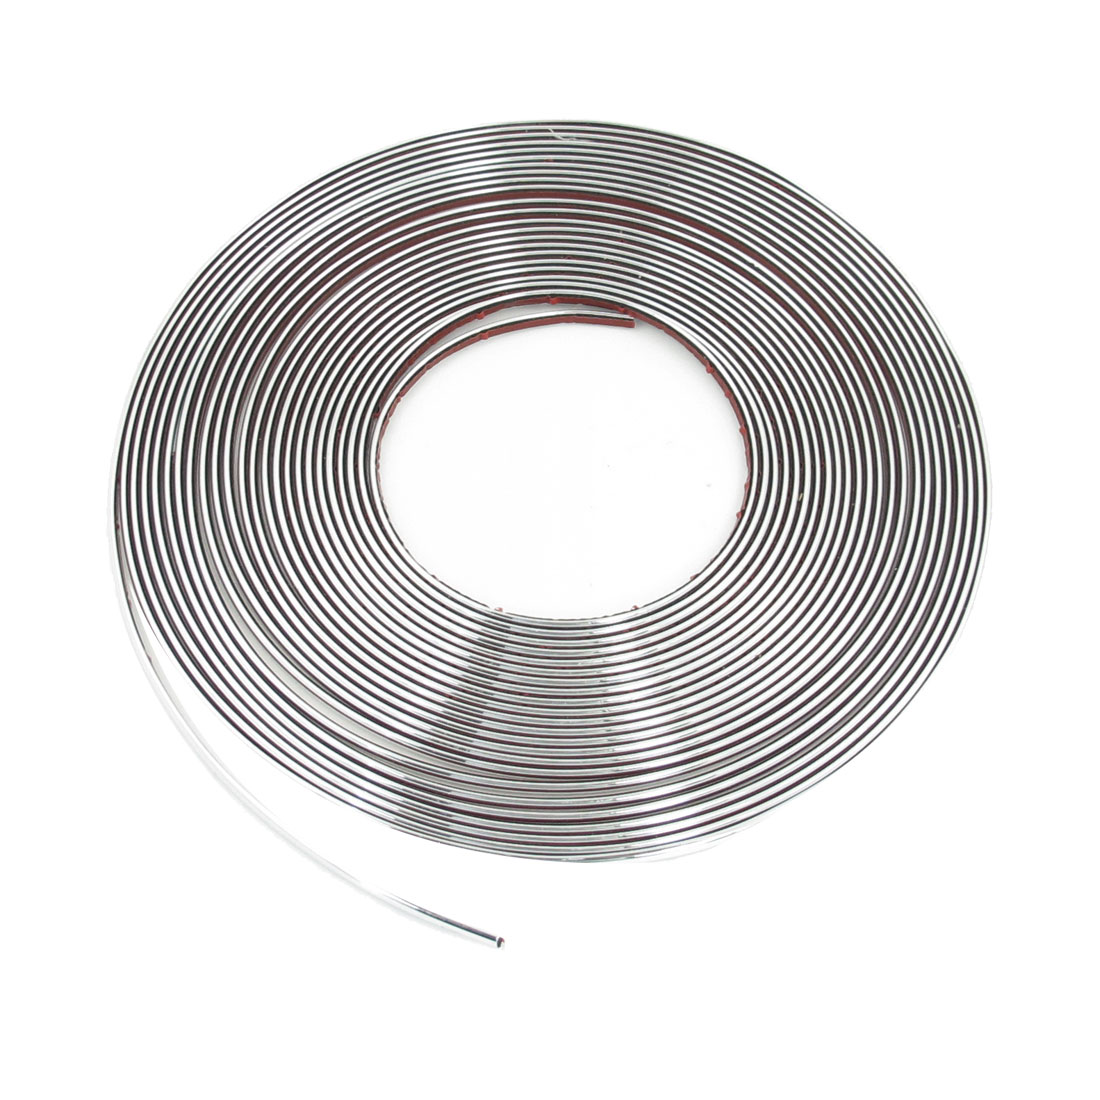 Car Dashboard Window DIY 6mm Width Moulding Trim Strip Bar Silver Tone 15M